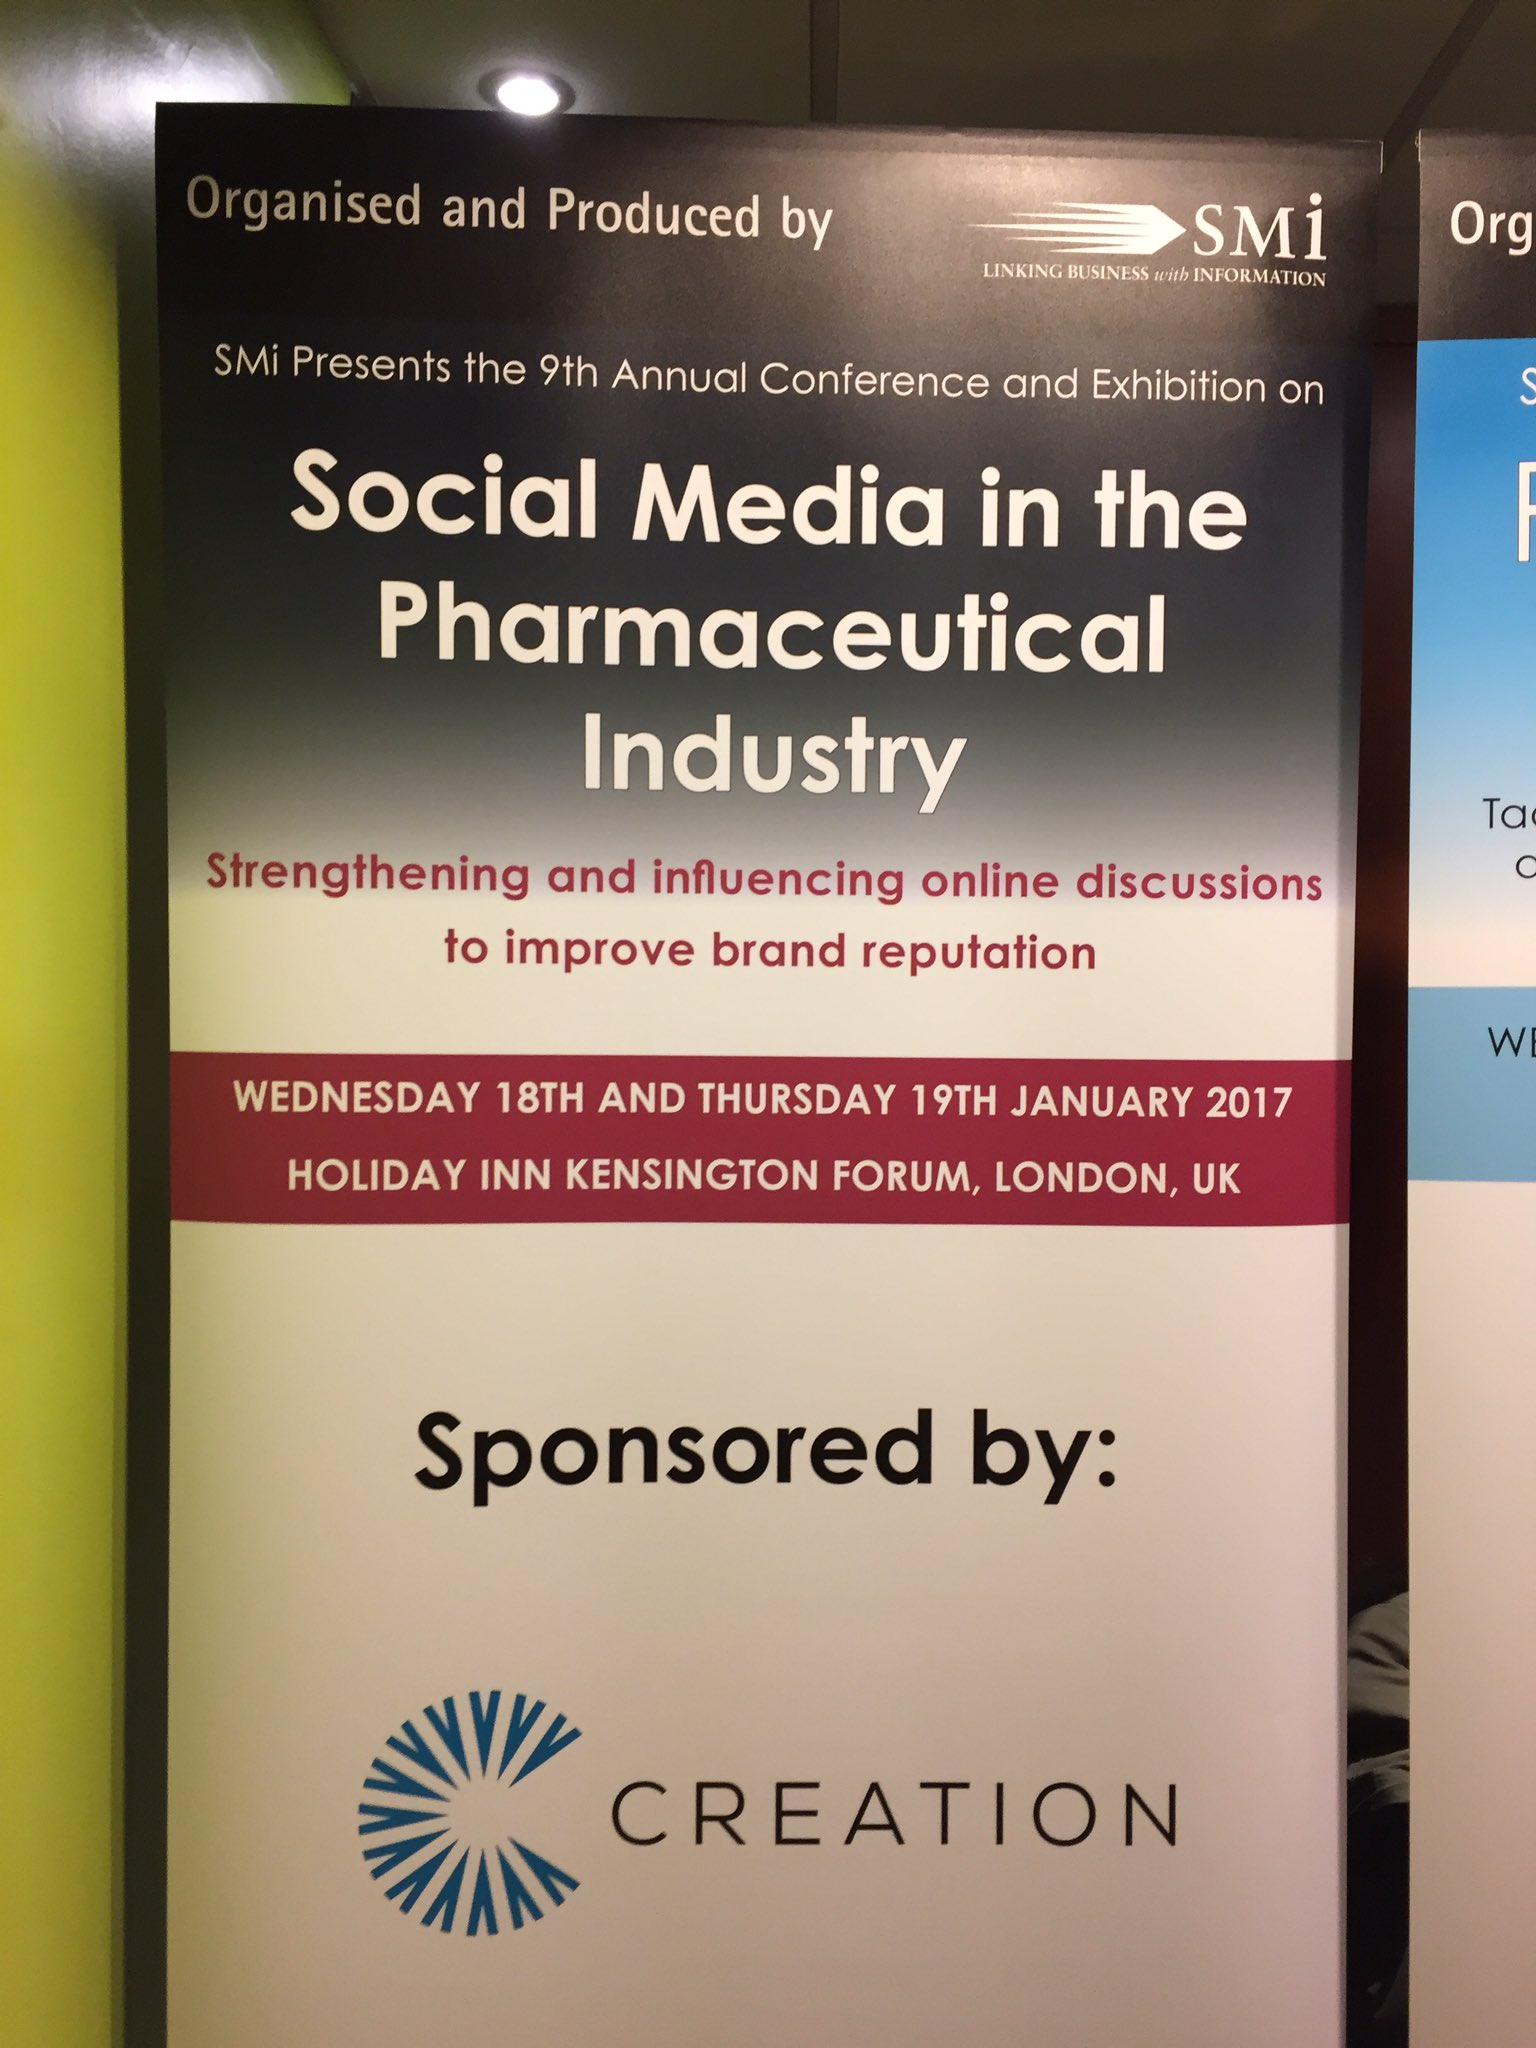 Thumbnail for SOCIAL MEDIA IN THE PHARMACEUTICAL INDUSTRY